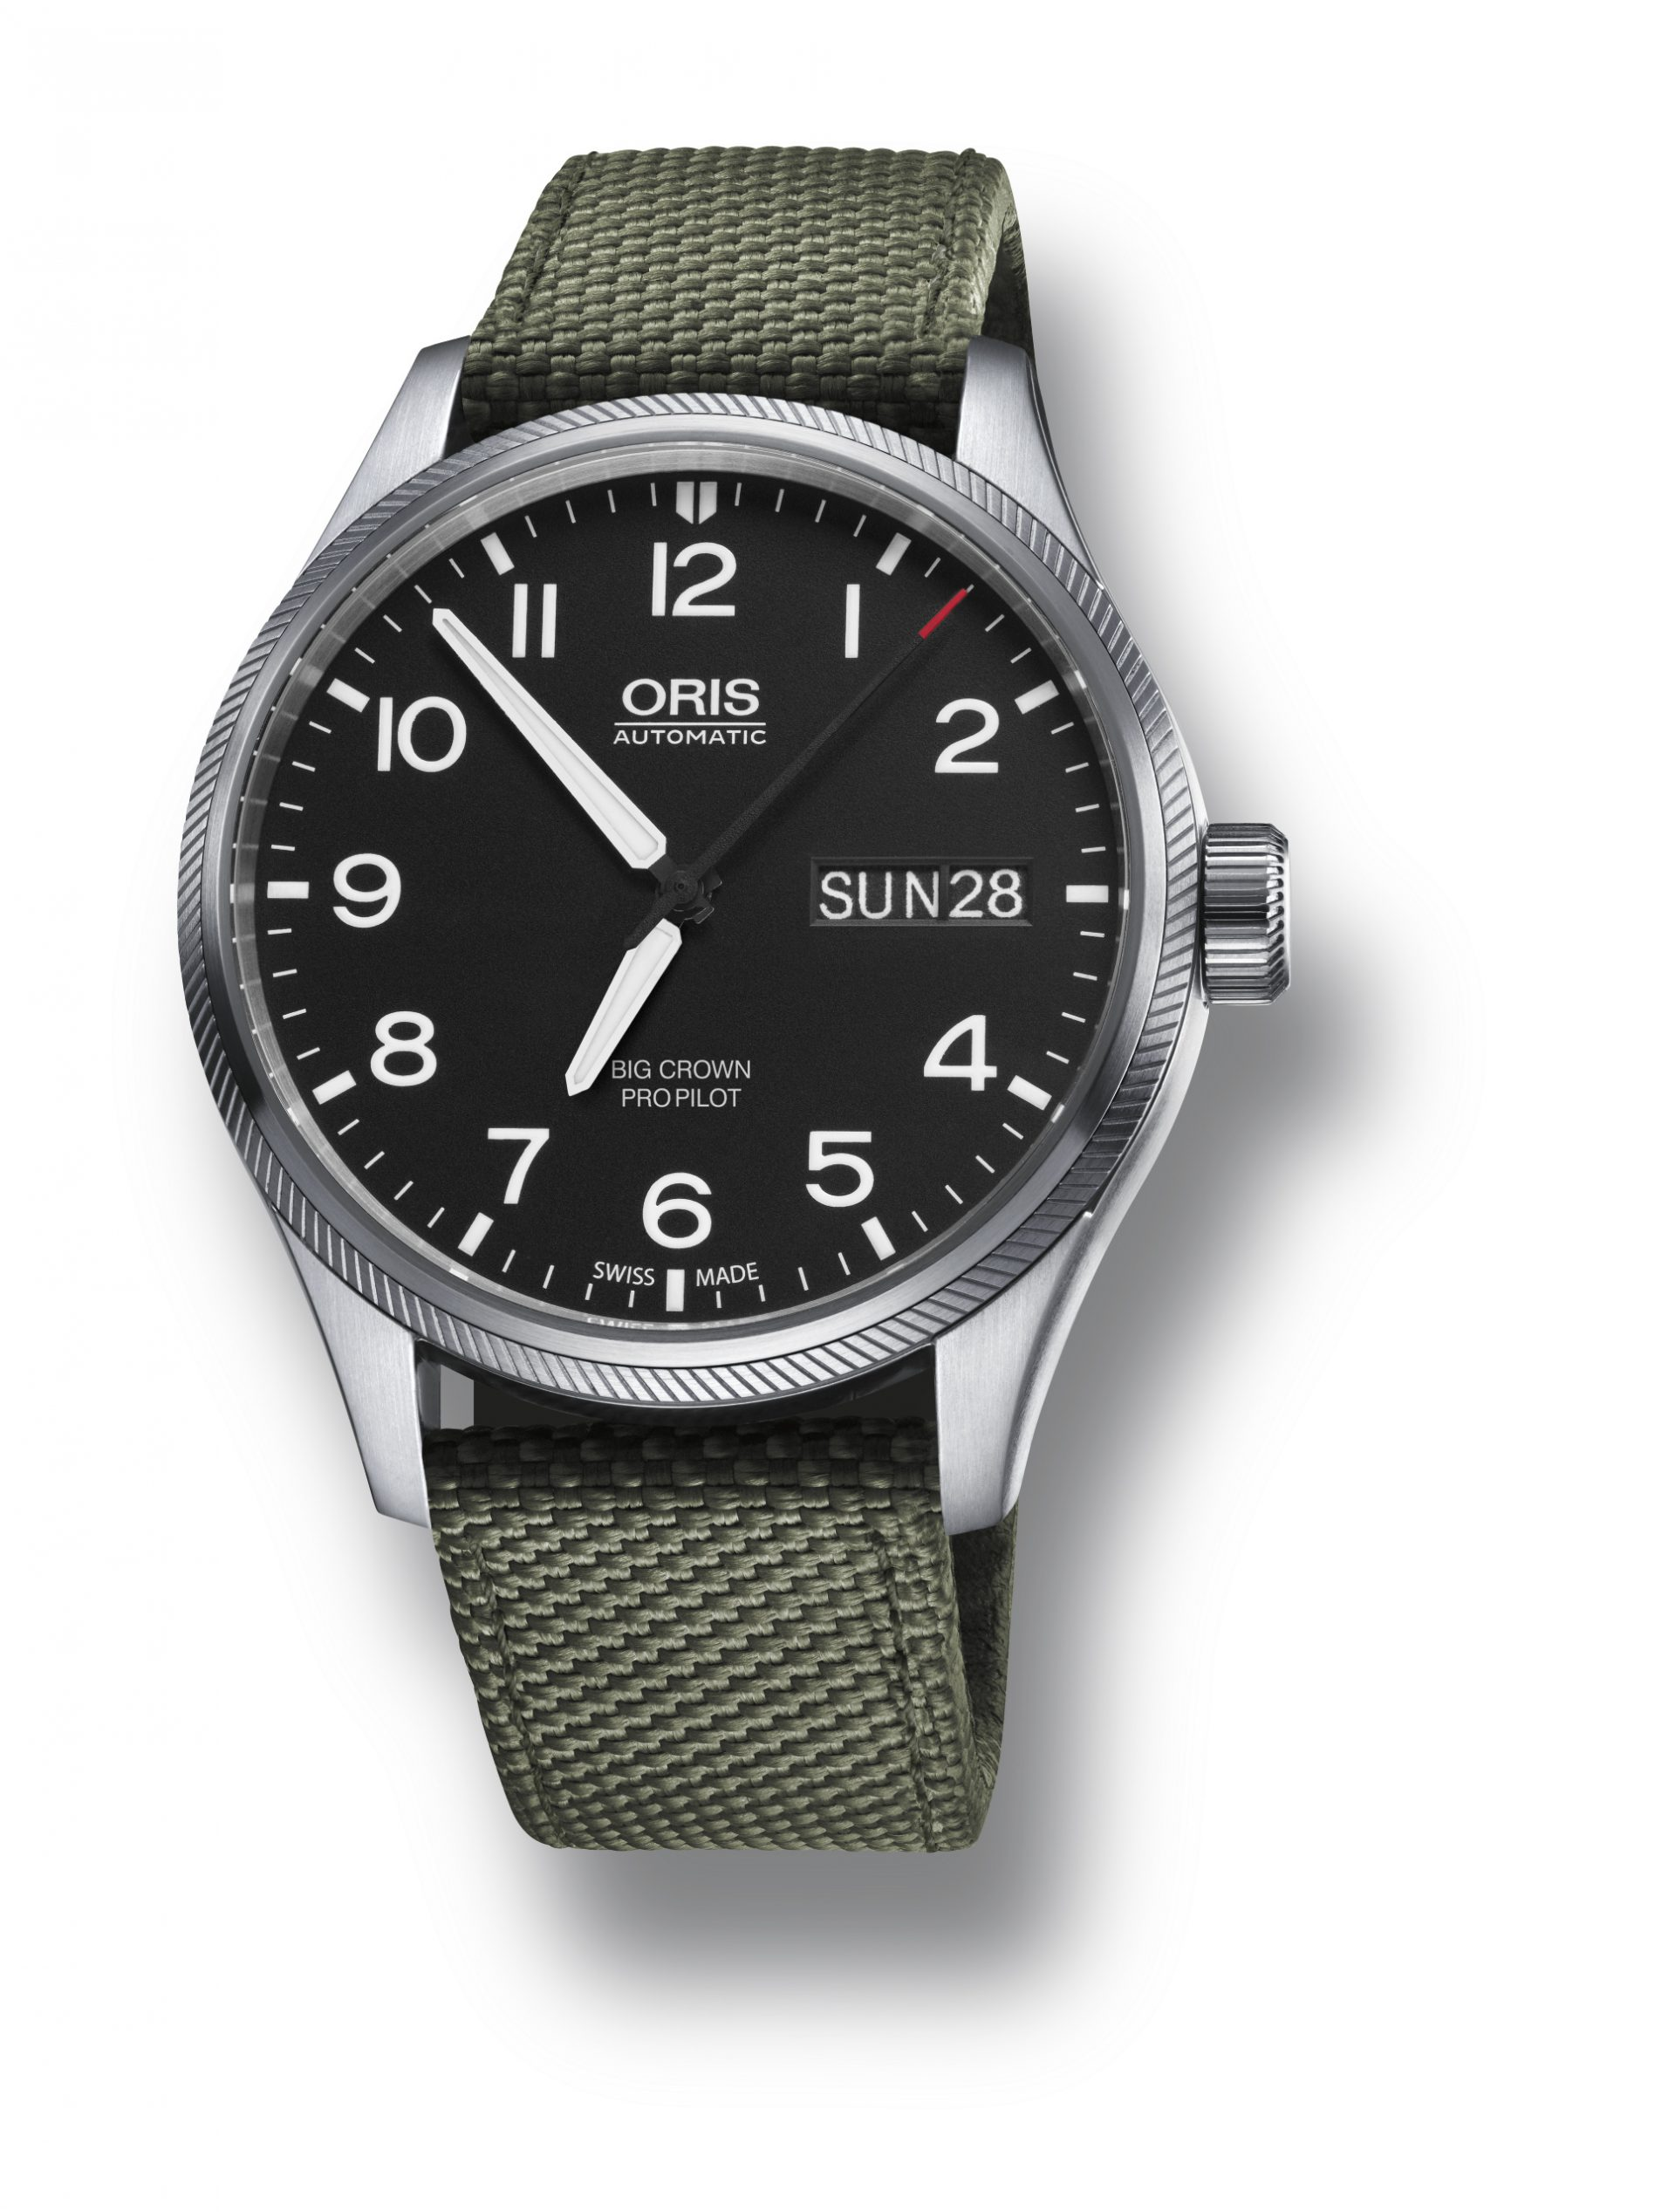 01 752 7698 4164-07 5 22 14FC - Oris Big Crown ProPilot Day Date